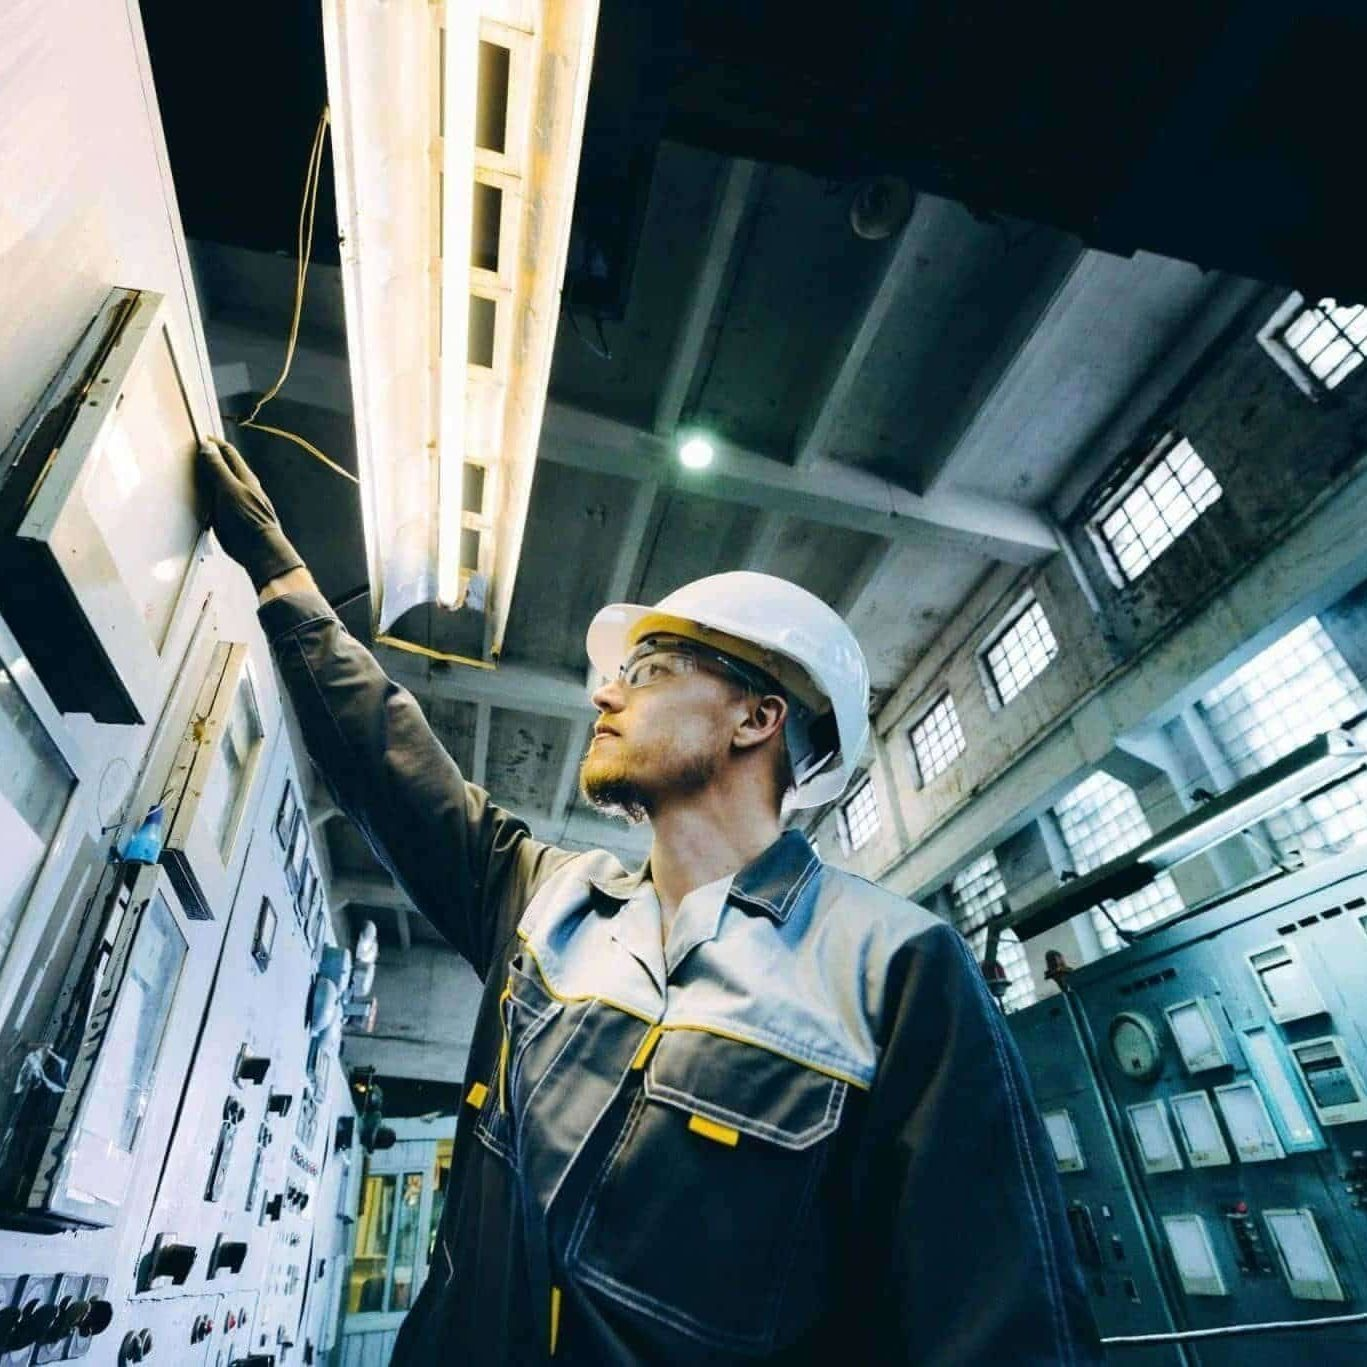 power plant worker energy industrial factory inspector expertise